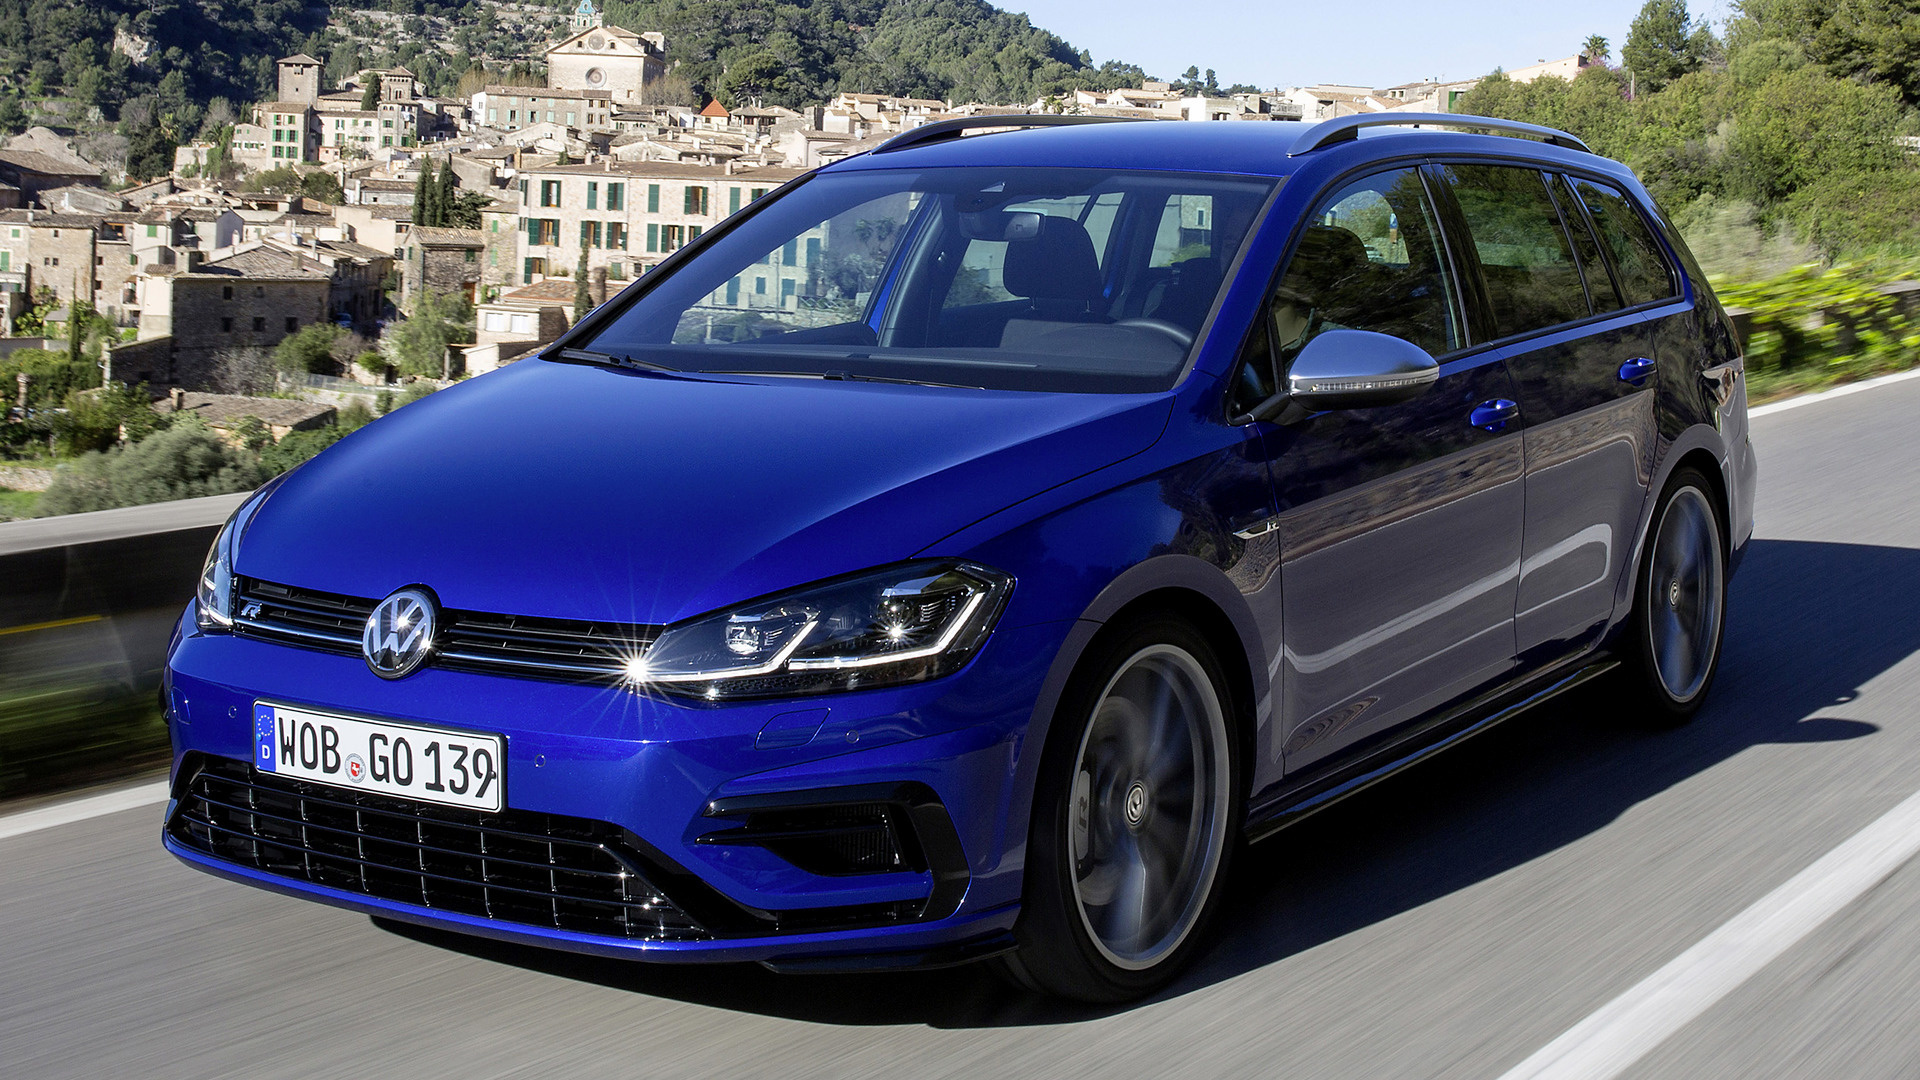 2016 Dodge Ram >> 2017 Volkswagen Golf R Variant - Wallpapers and HD Images ...